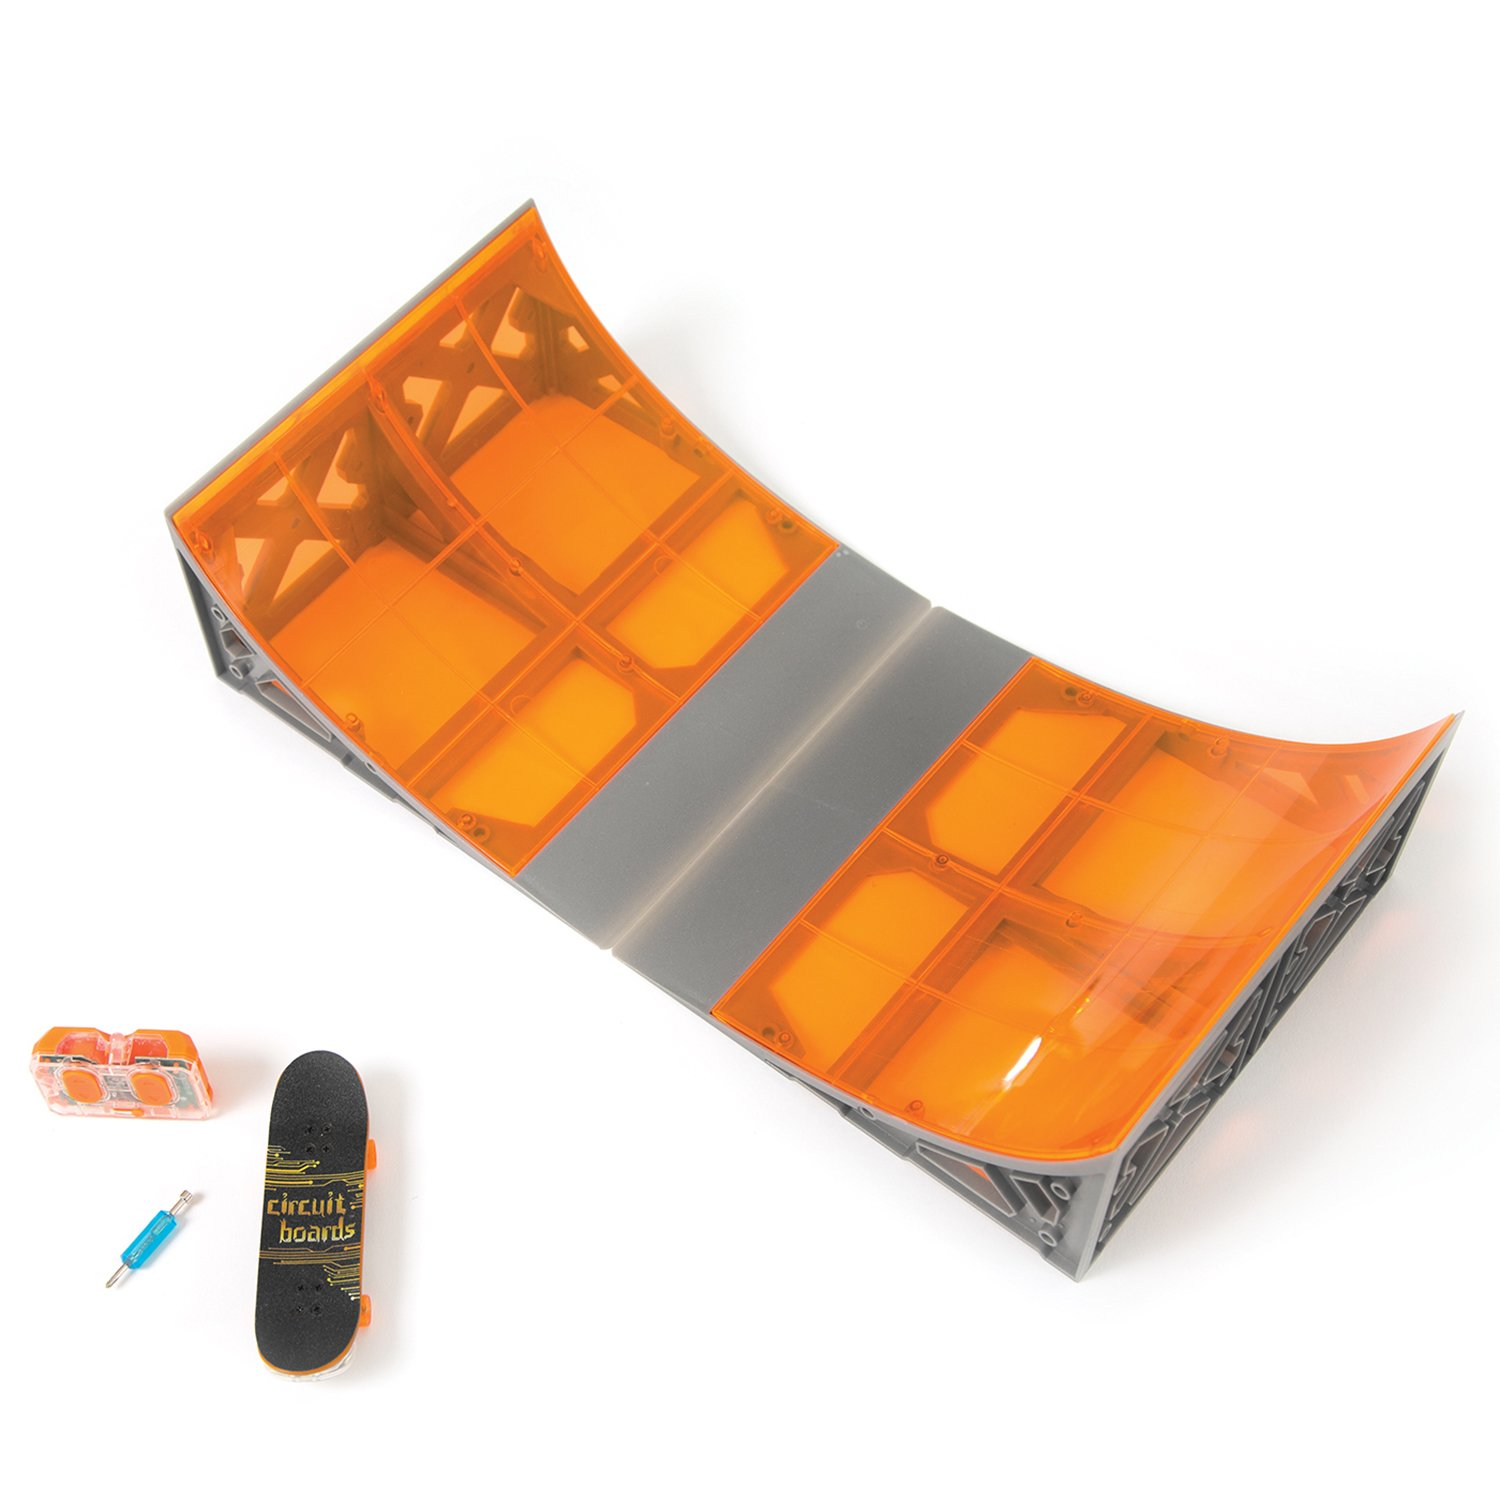 Tony Hawk Circuit Boards Remote Control Skateboard Halfpipe Ramp -Colours May Vary by HEXBUG